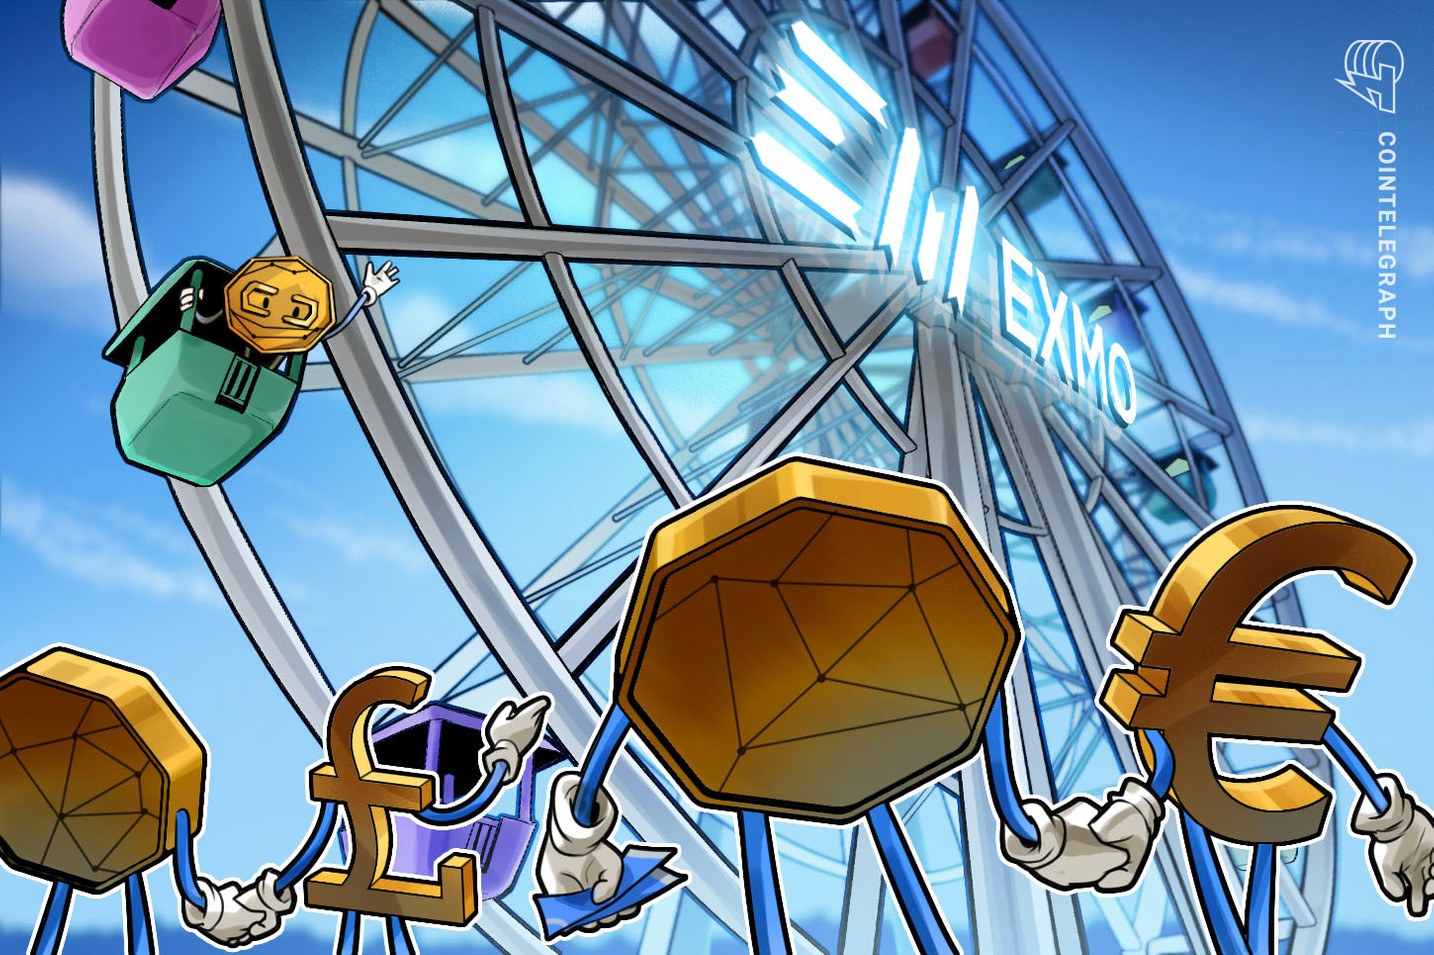 Europe-Focused Crypto Exchange Vows to Offer Favorable Terms for Users